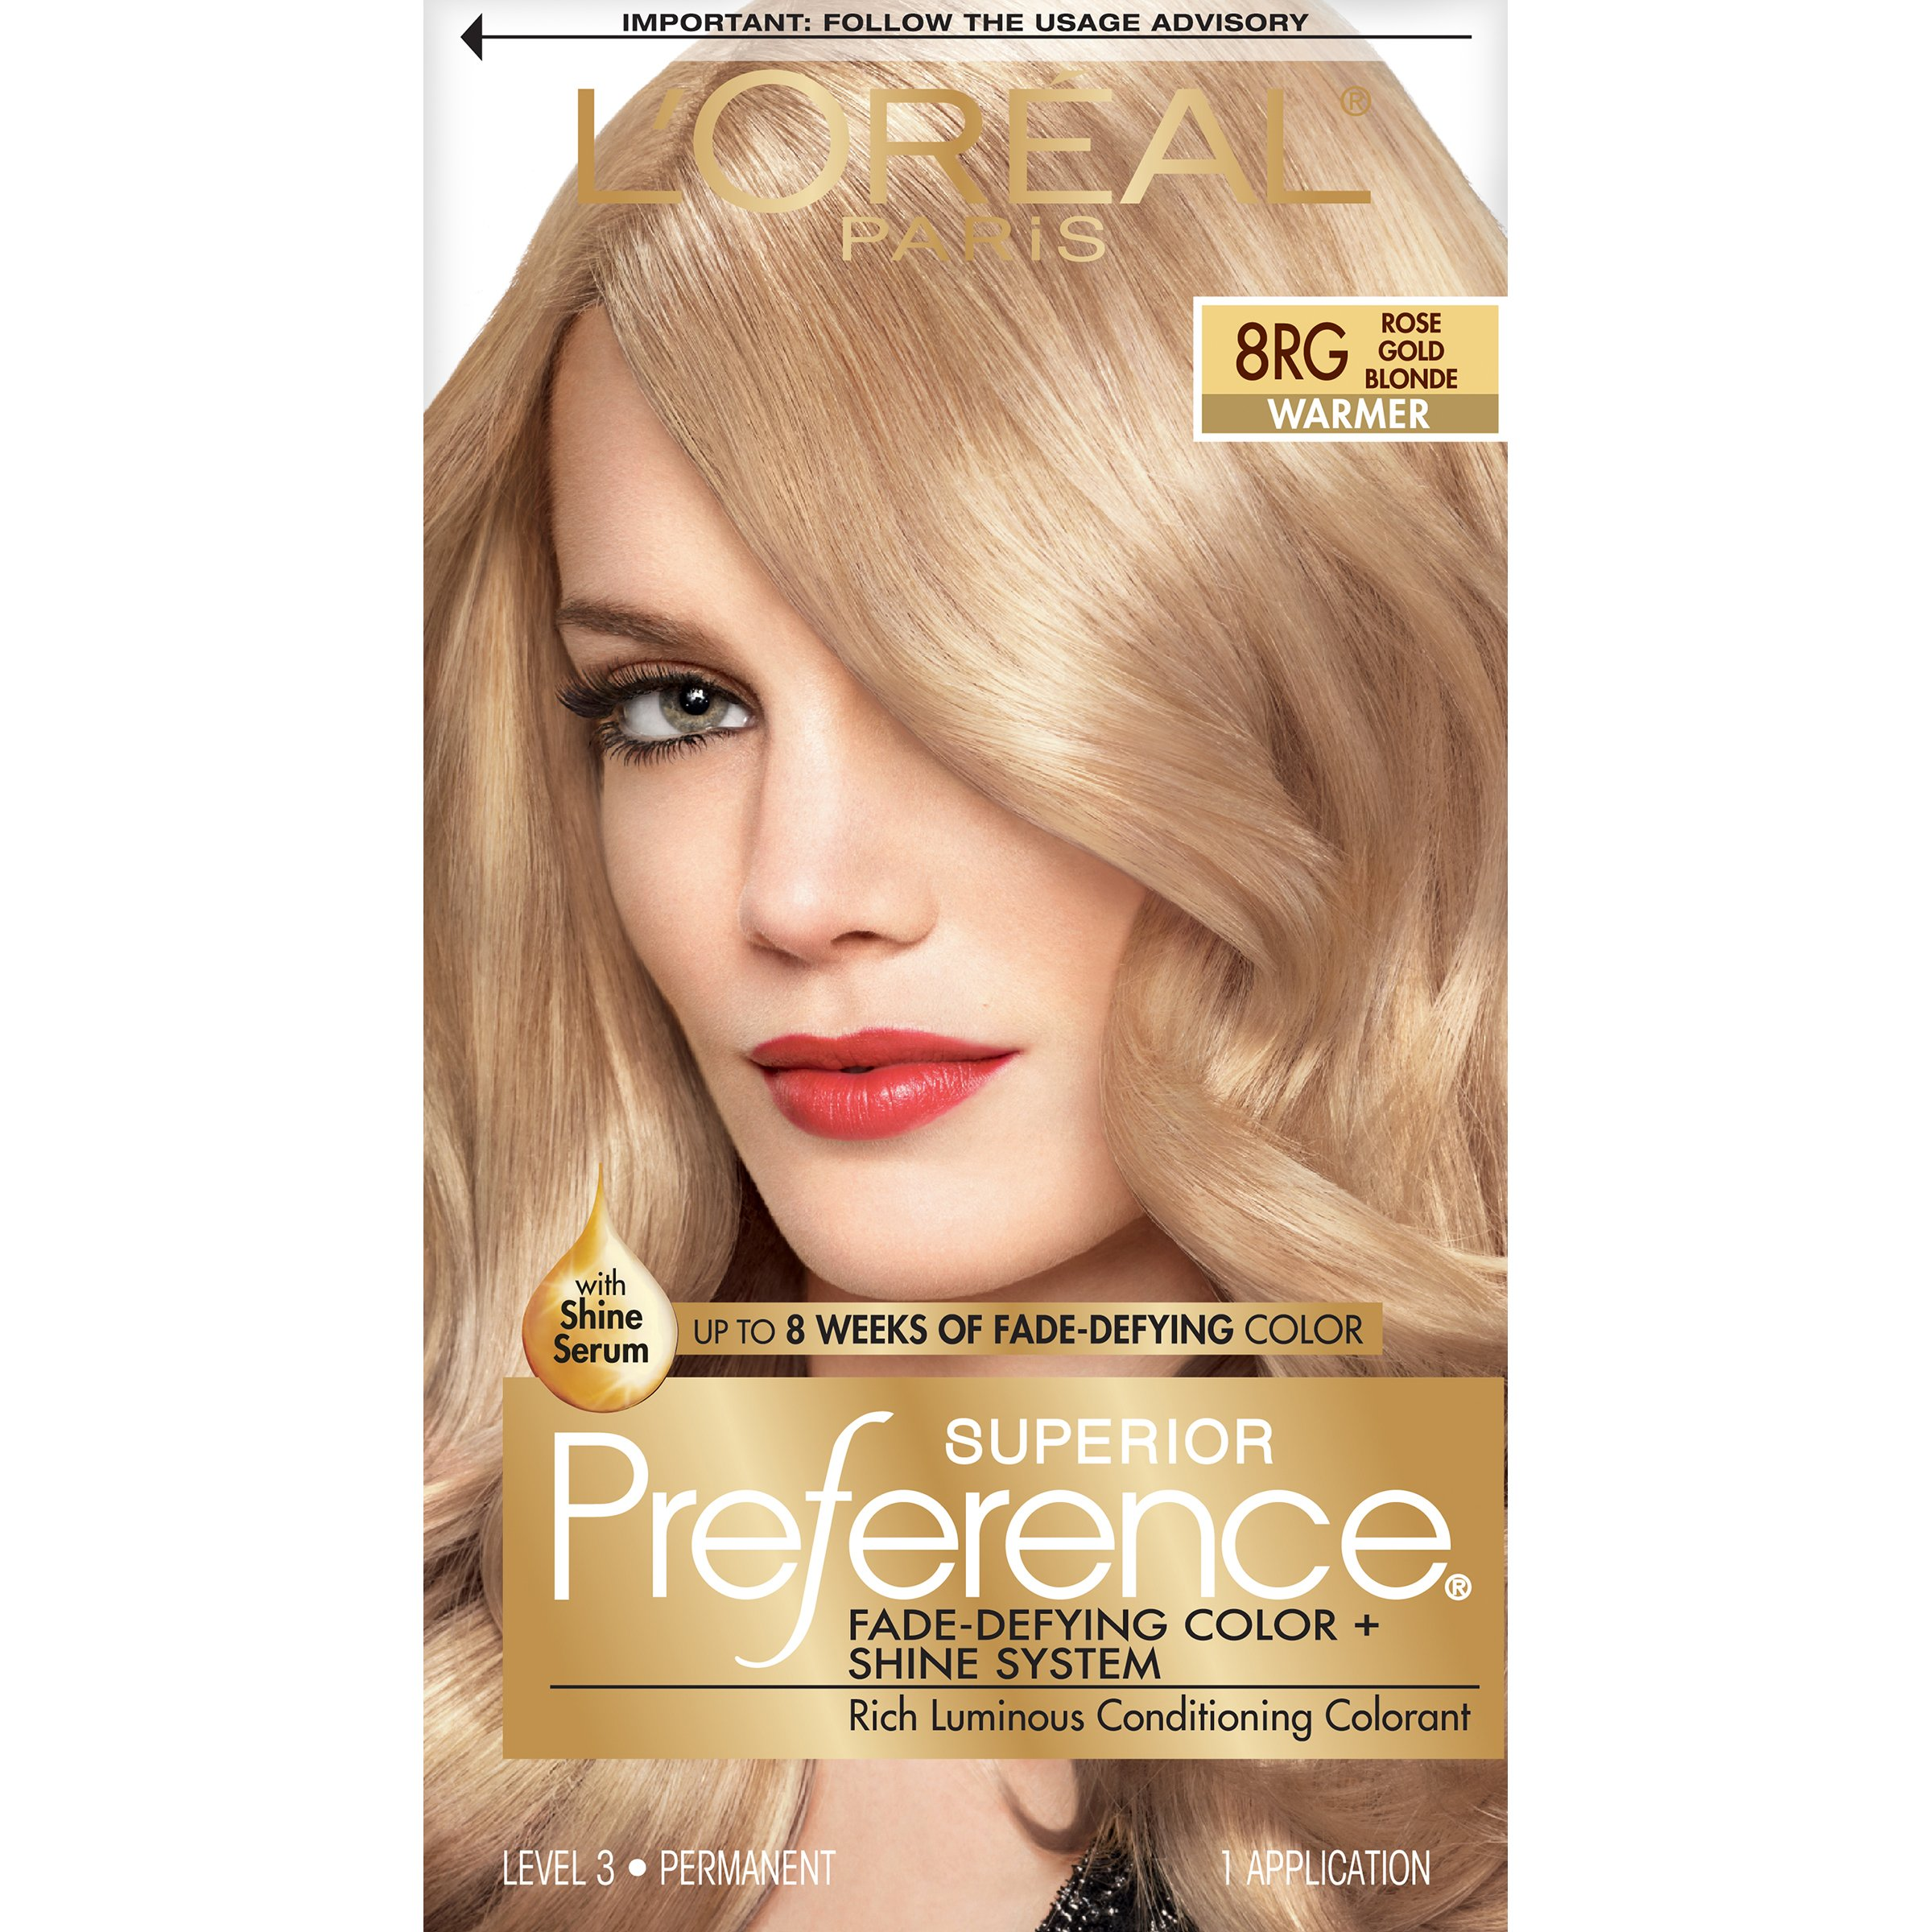 L'Oreal Paris Superior Preference Fade-Defying Color + Shine System, 8RG Rose Gold Blonde(Packaging May Vary) by L'Oreal Paris